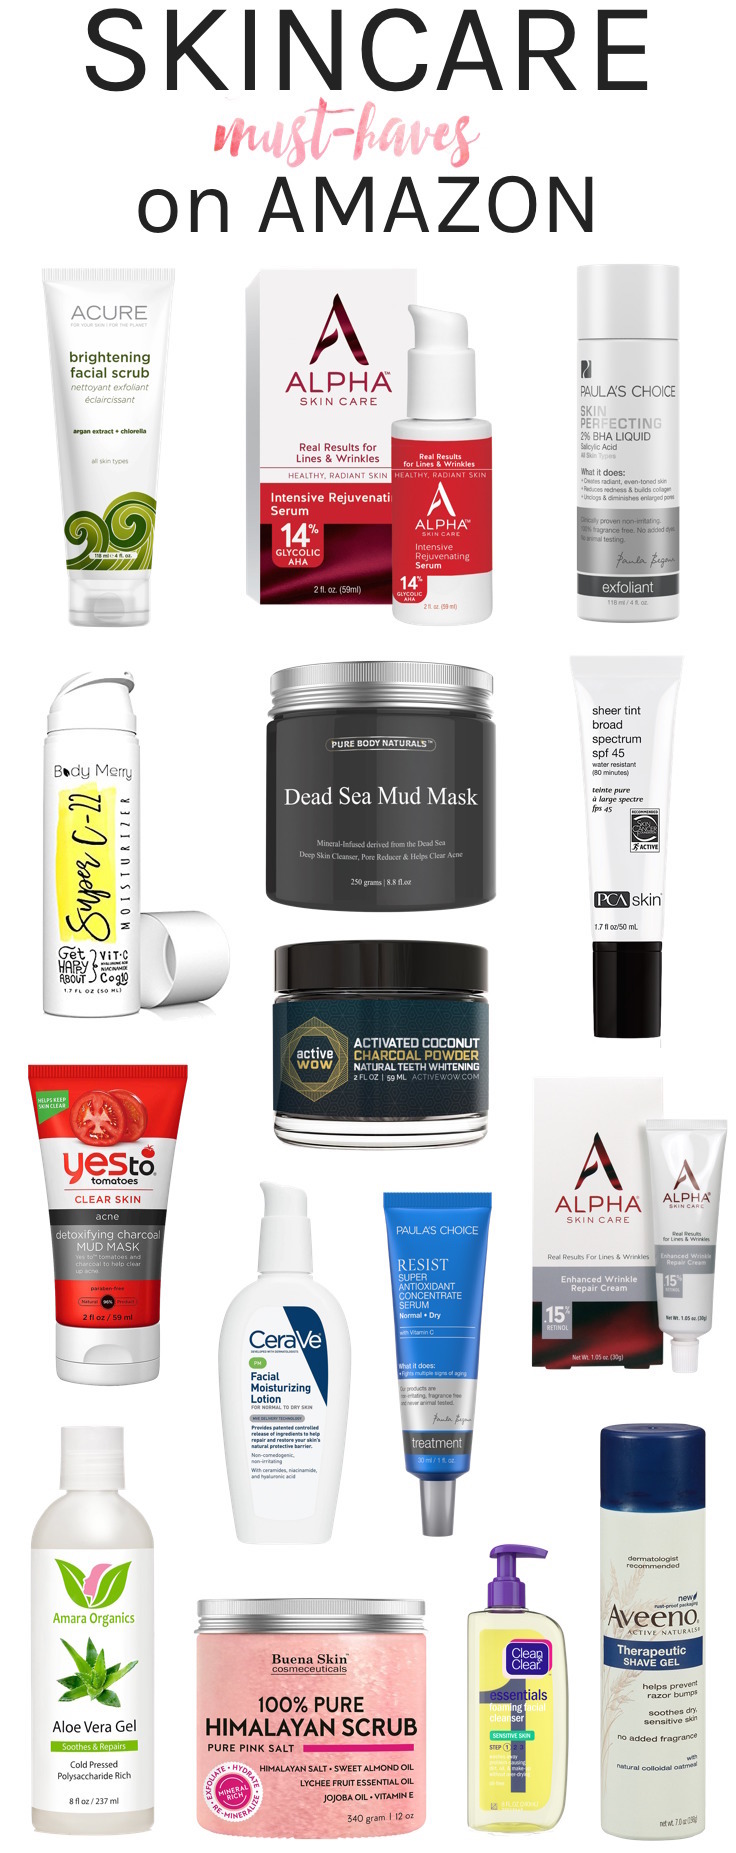 Whether you are dealing with acne, redness, dark spots or wrinkles, here are the best skincare saviors on Amazon (all under $  50) that really work!